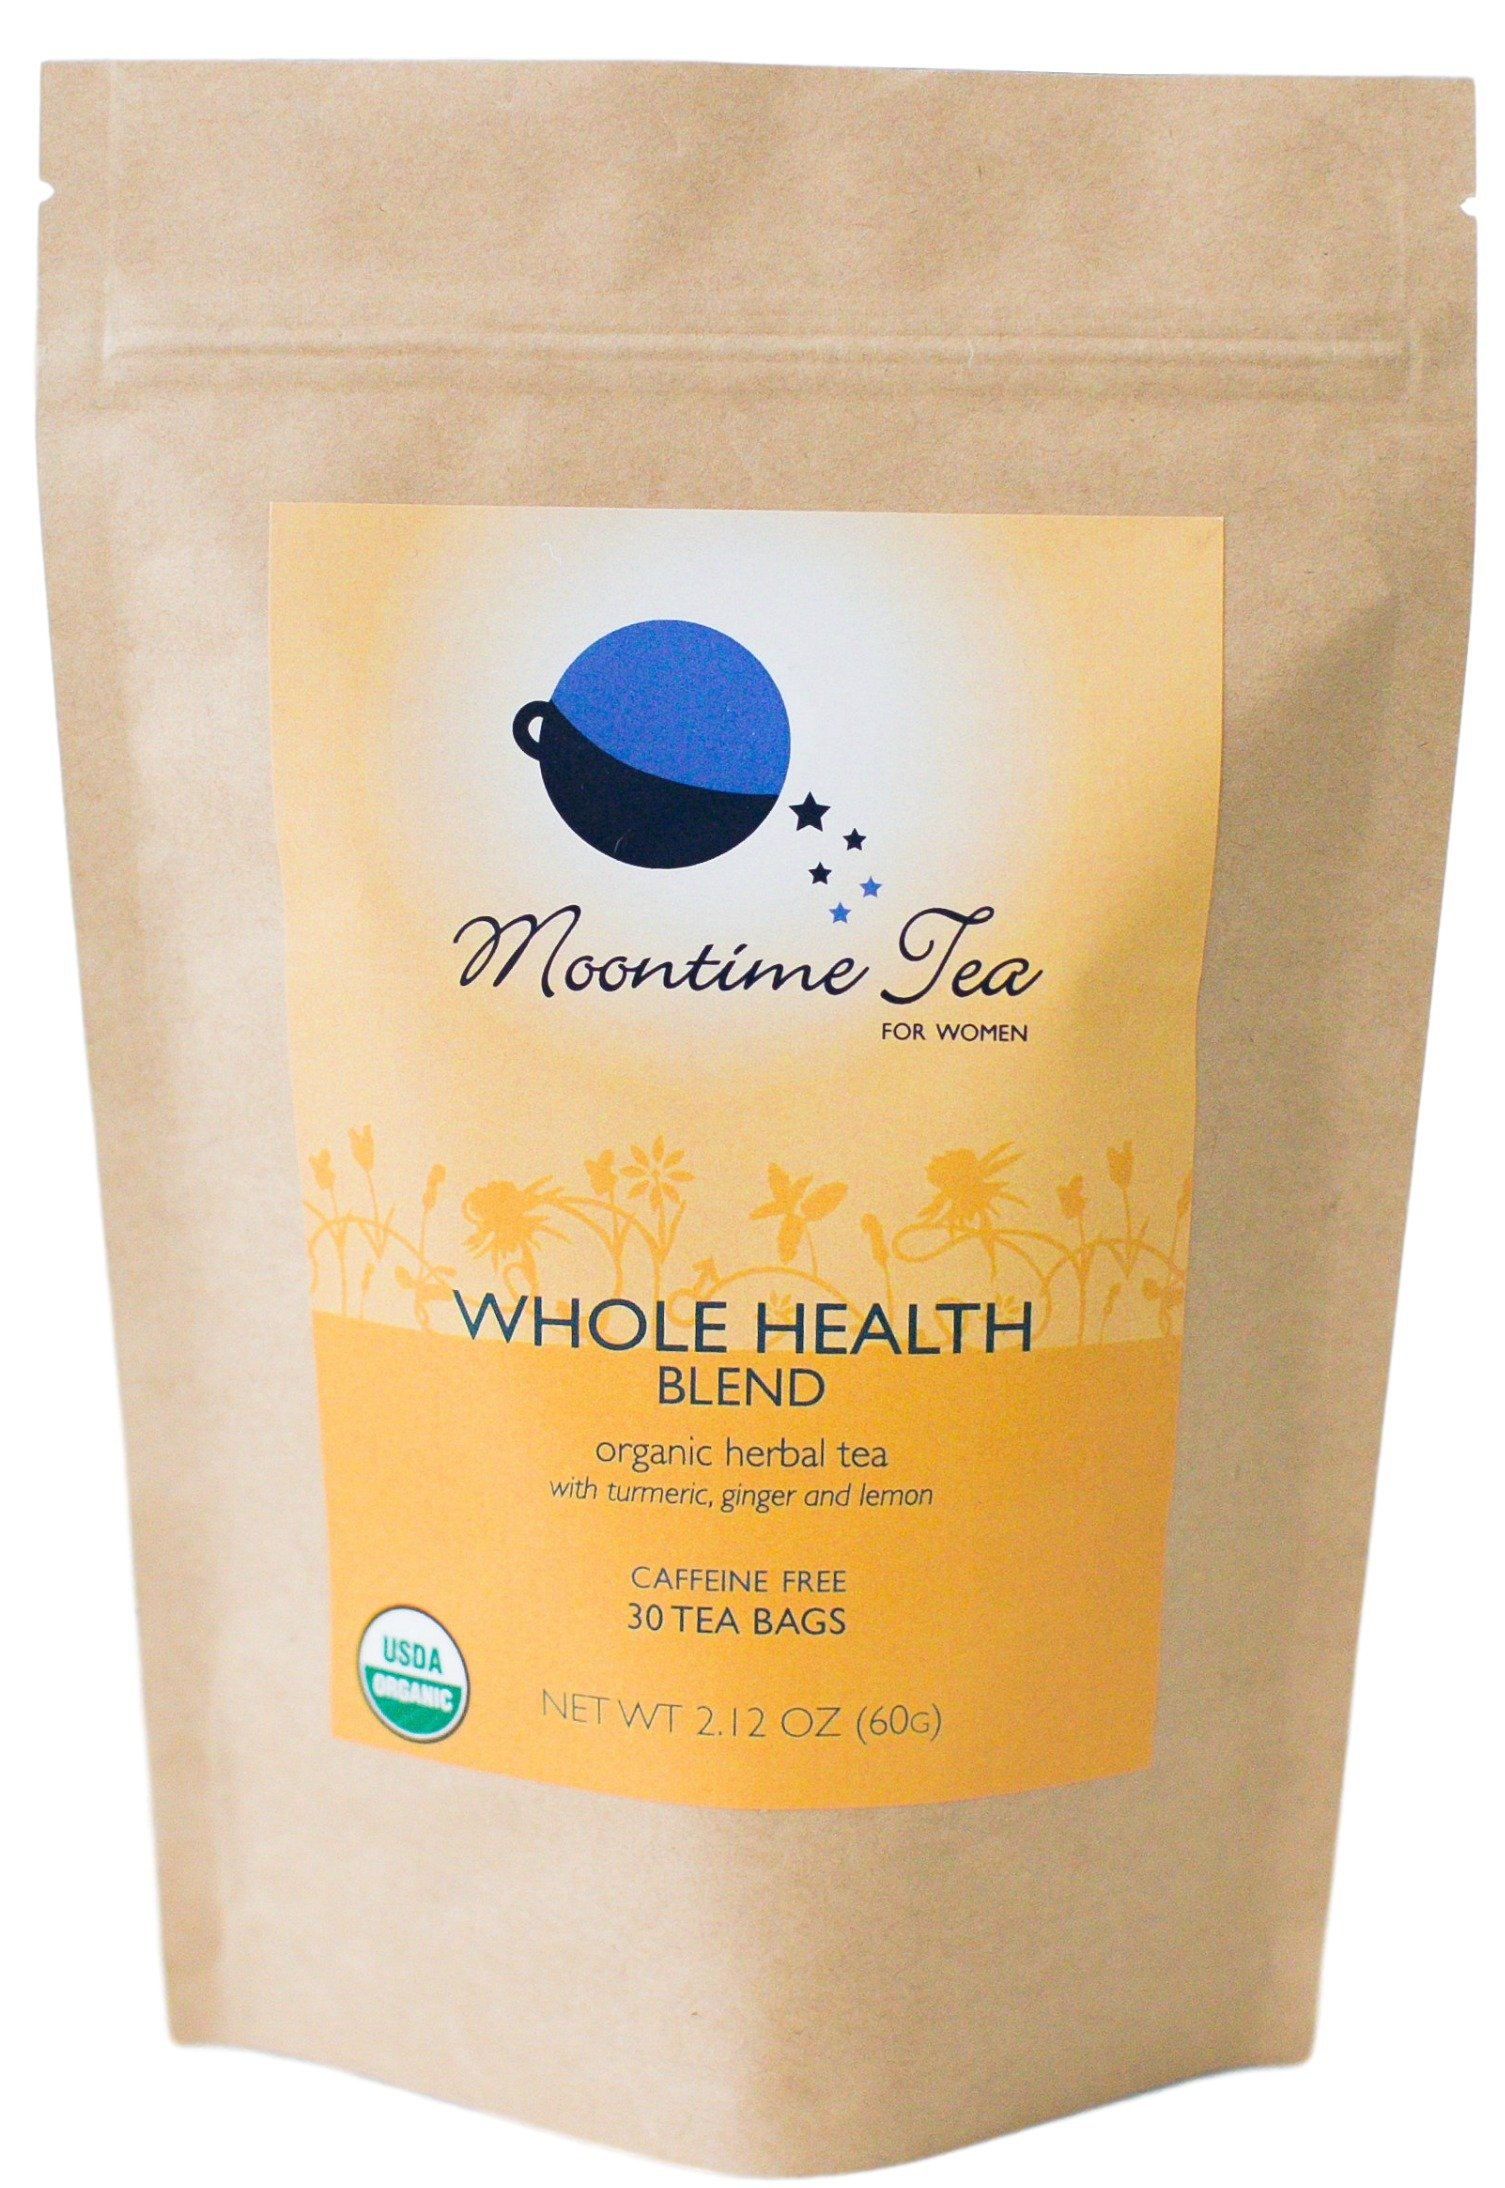 Organic Whole Health Tea, 30 Tea Bags with Turmeric, Ginger, Lemon and Black Pepper by Moontime Tea